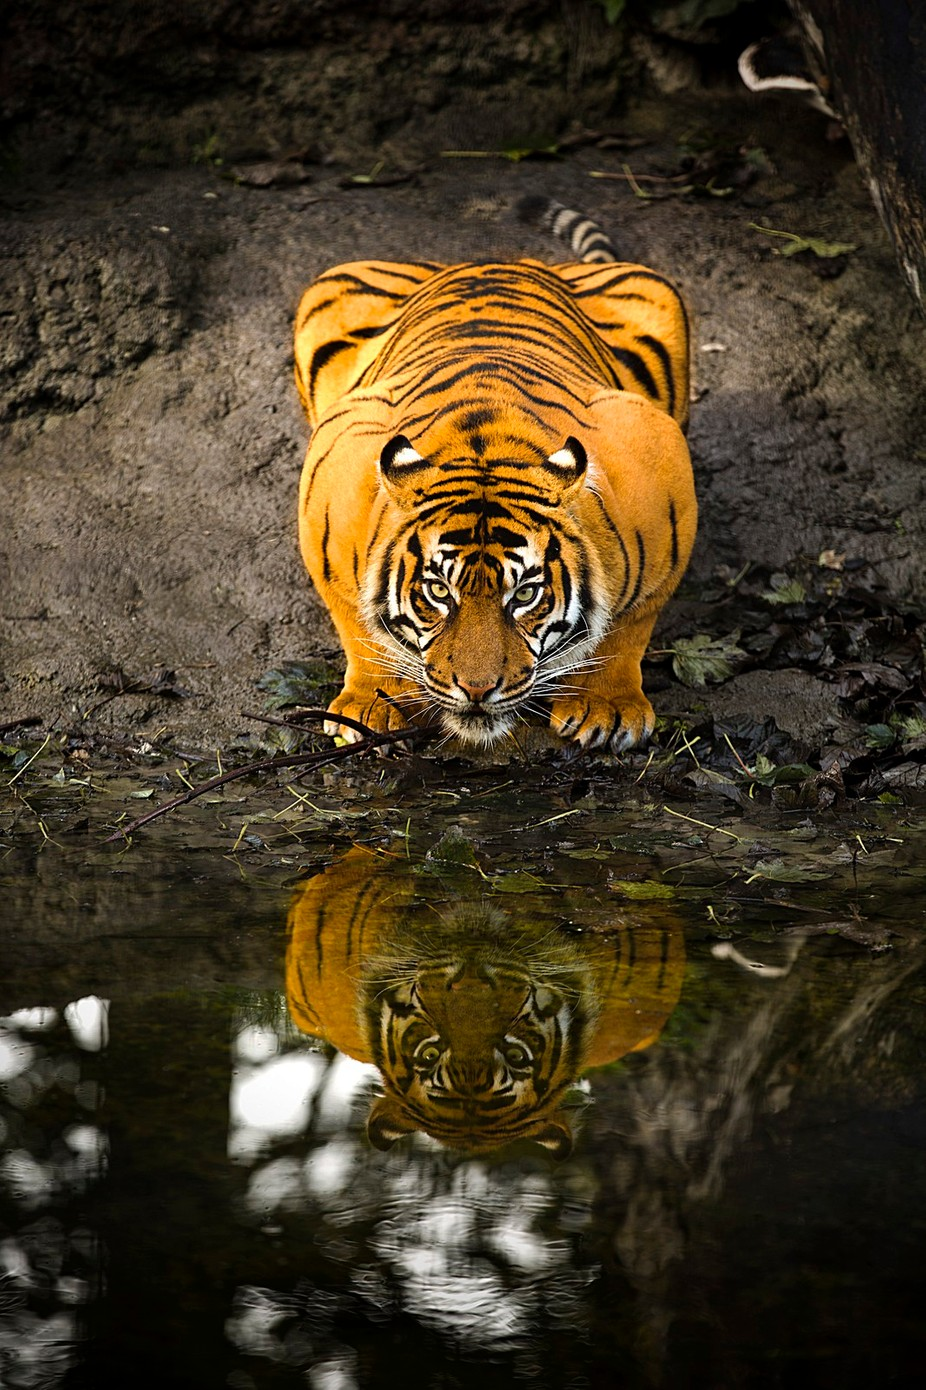 Tiger reflection by DPMPhotography